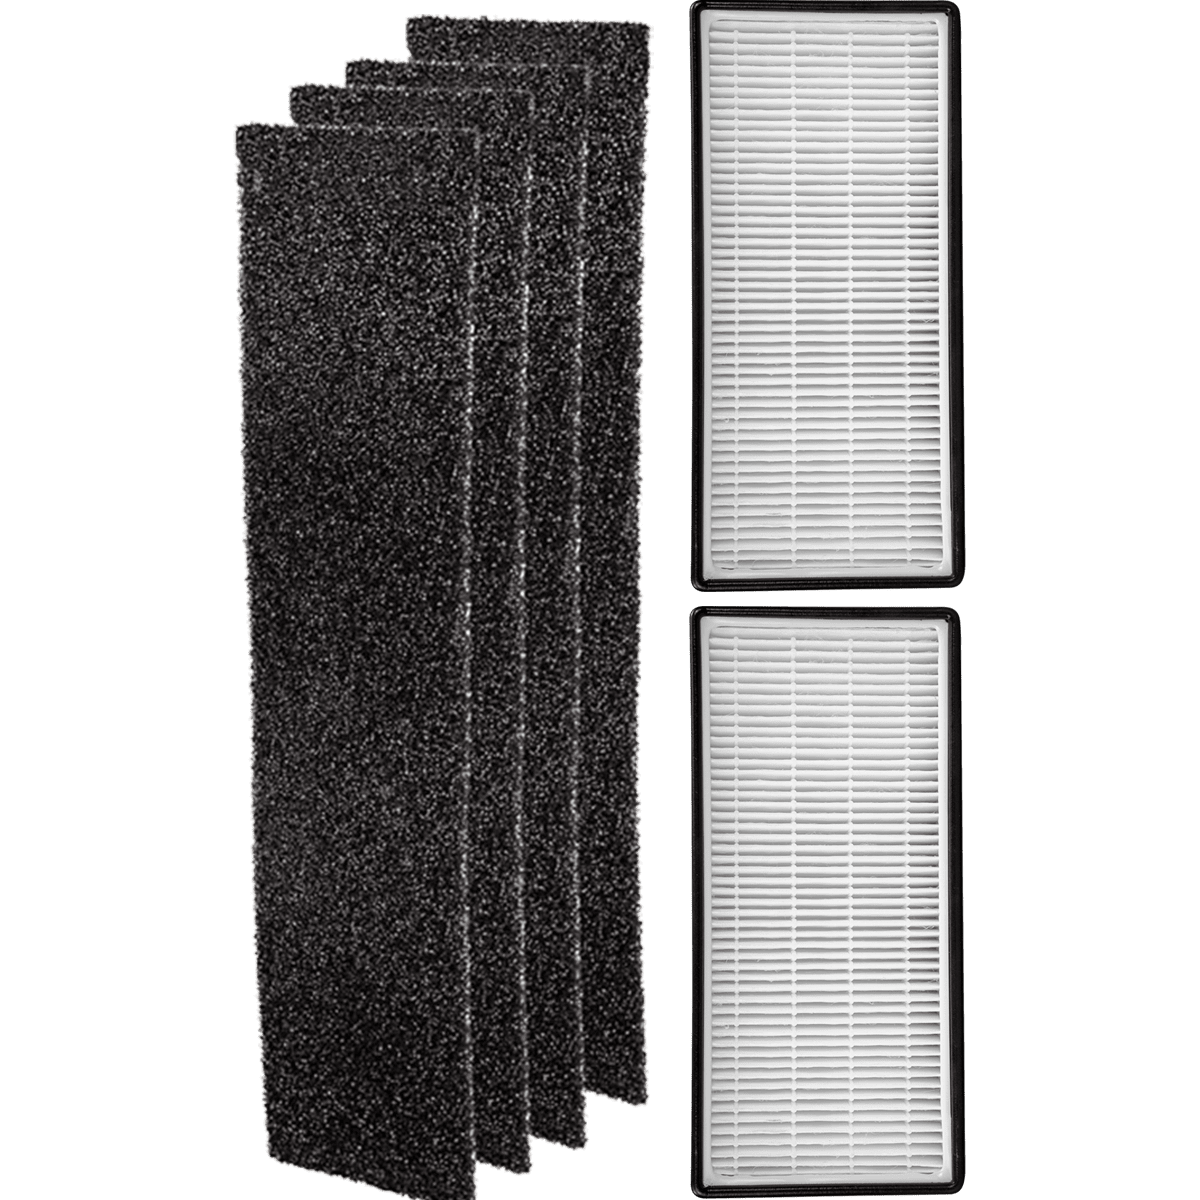 Filter-Monster Replacement Filter Kit for Whirlpool Tower Air Purifiers wh6376k